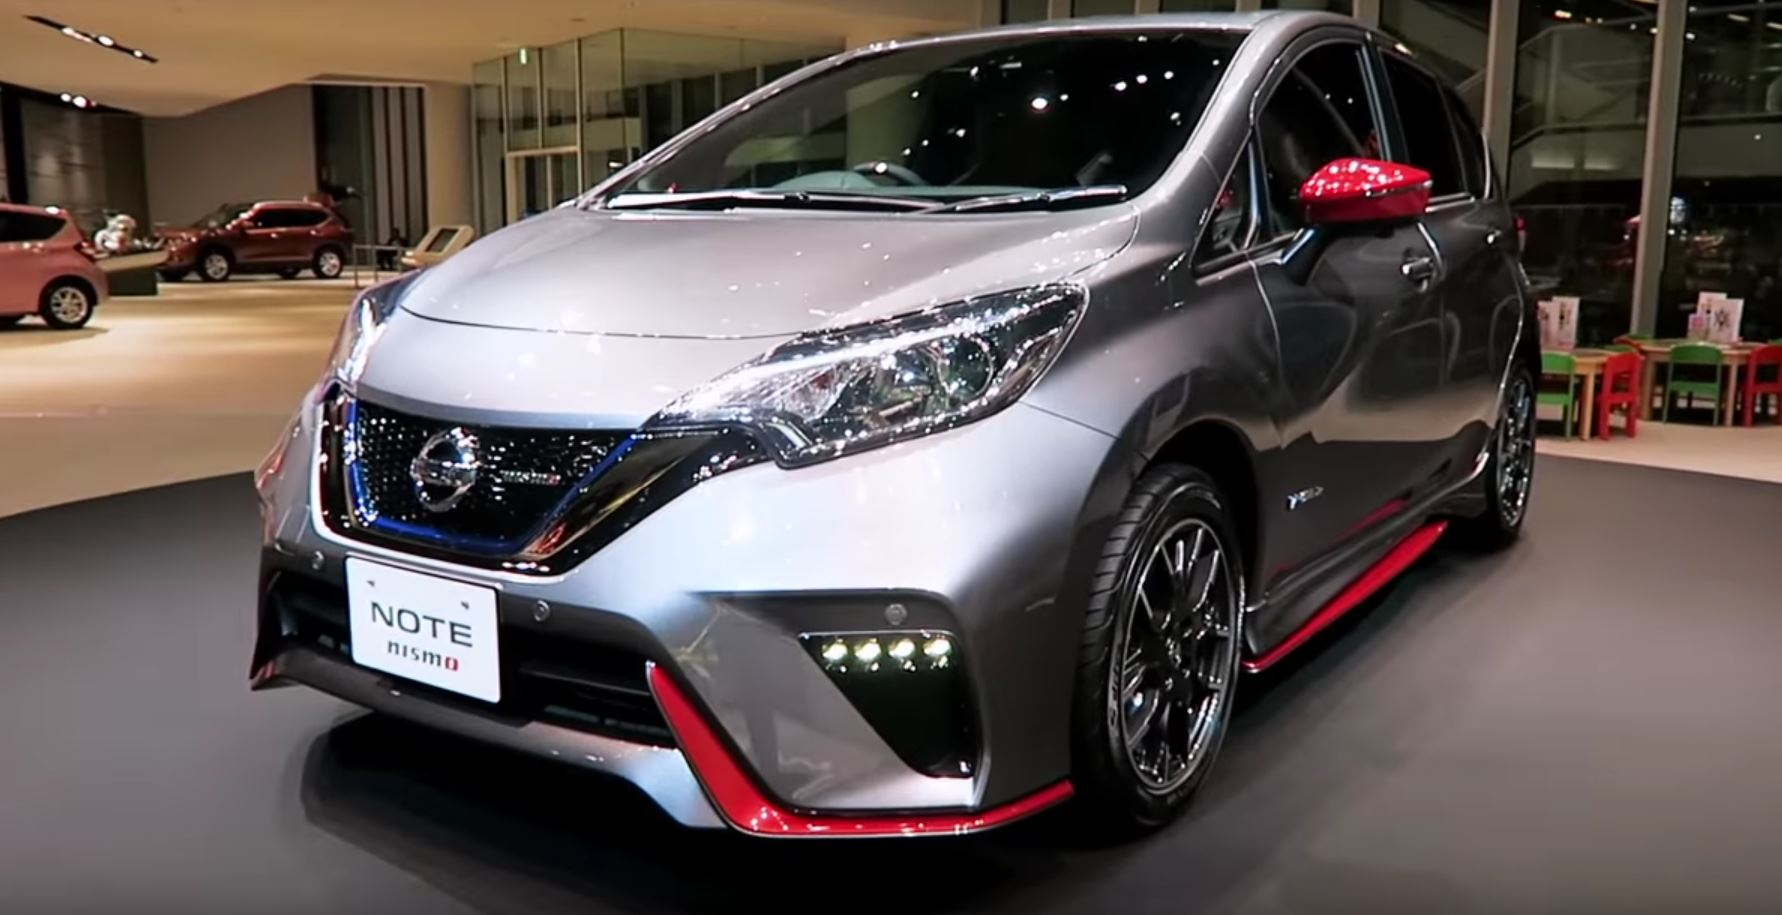 2017 Nissan Note E Power Nismo Is Green And Hot At The